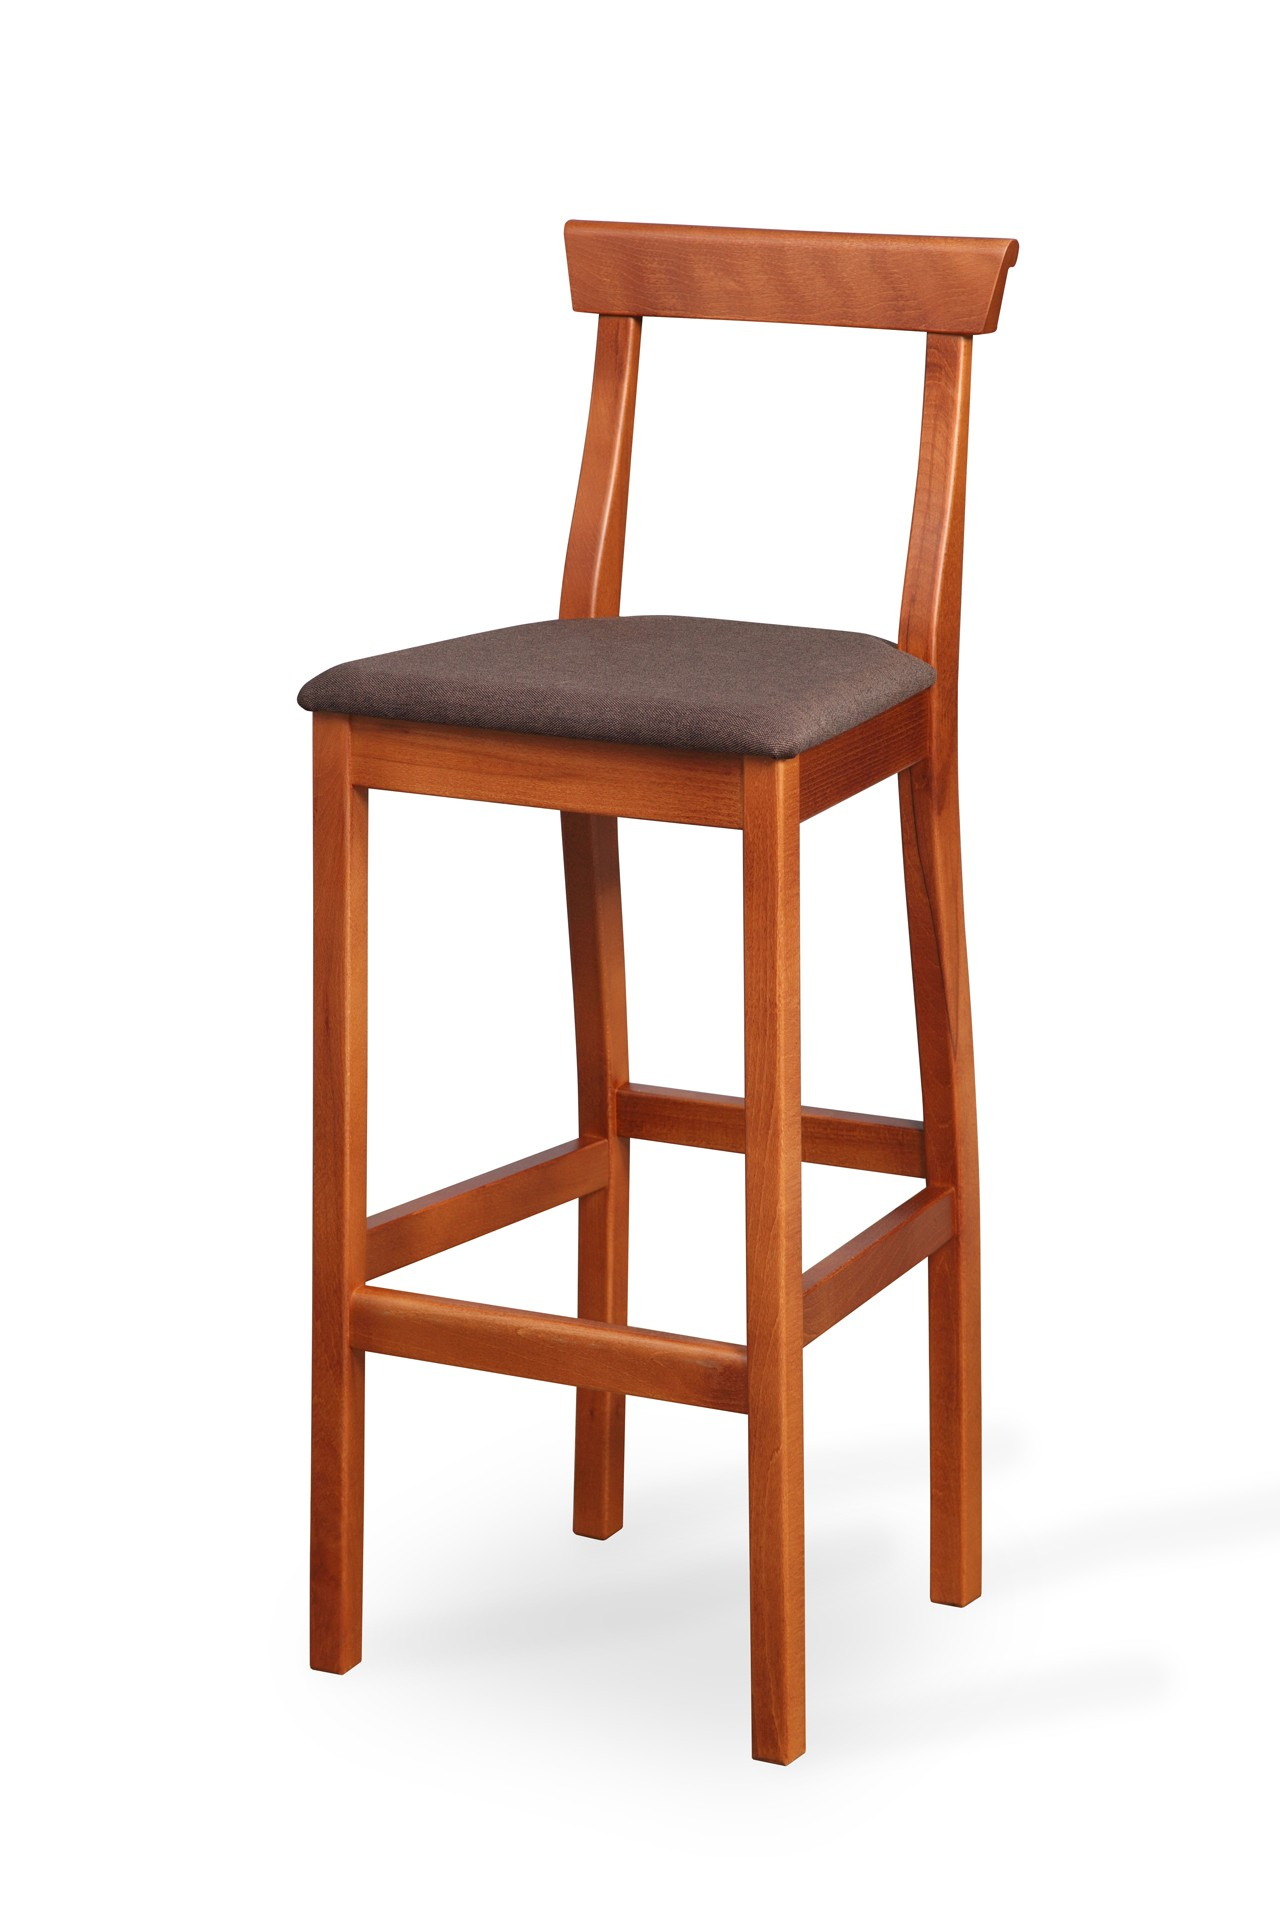 DURATA BAR STOOL with upholstered seat